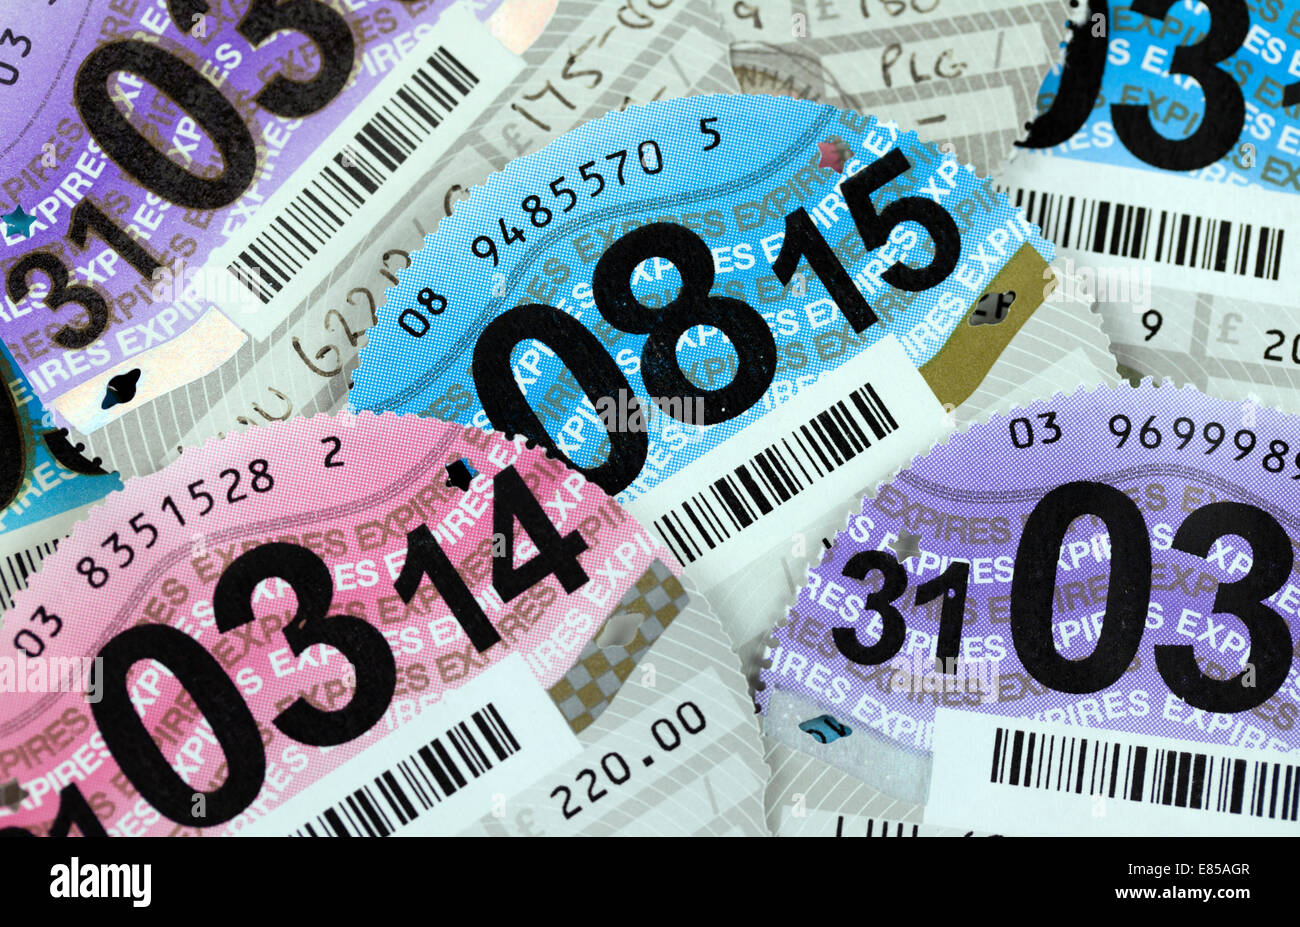 Car tax discs 2014 2015 - Stock Image